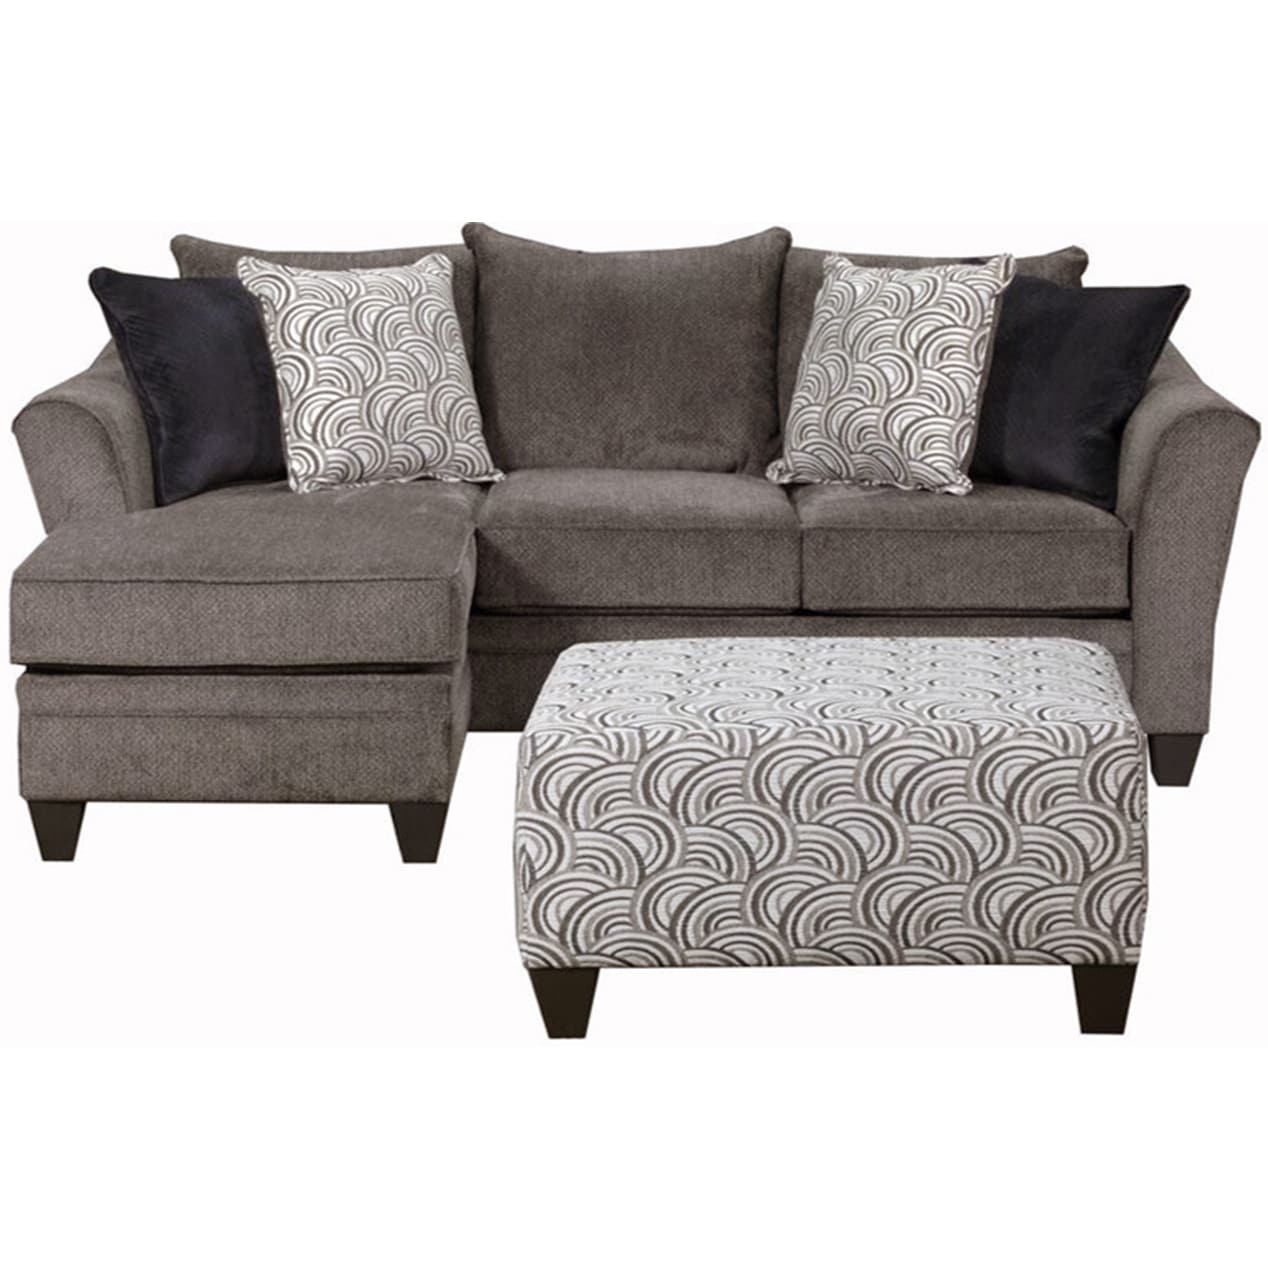 Simmons Upholstery Albany Pewter Sofa Chaise – Free Shipping Today With Simmons Chaise Sofas (View 5 of 10)